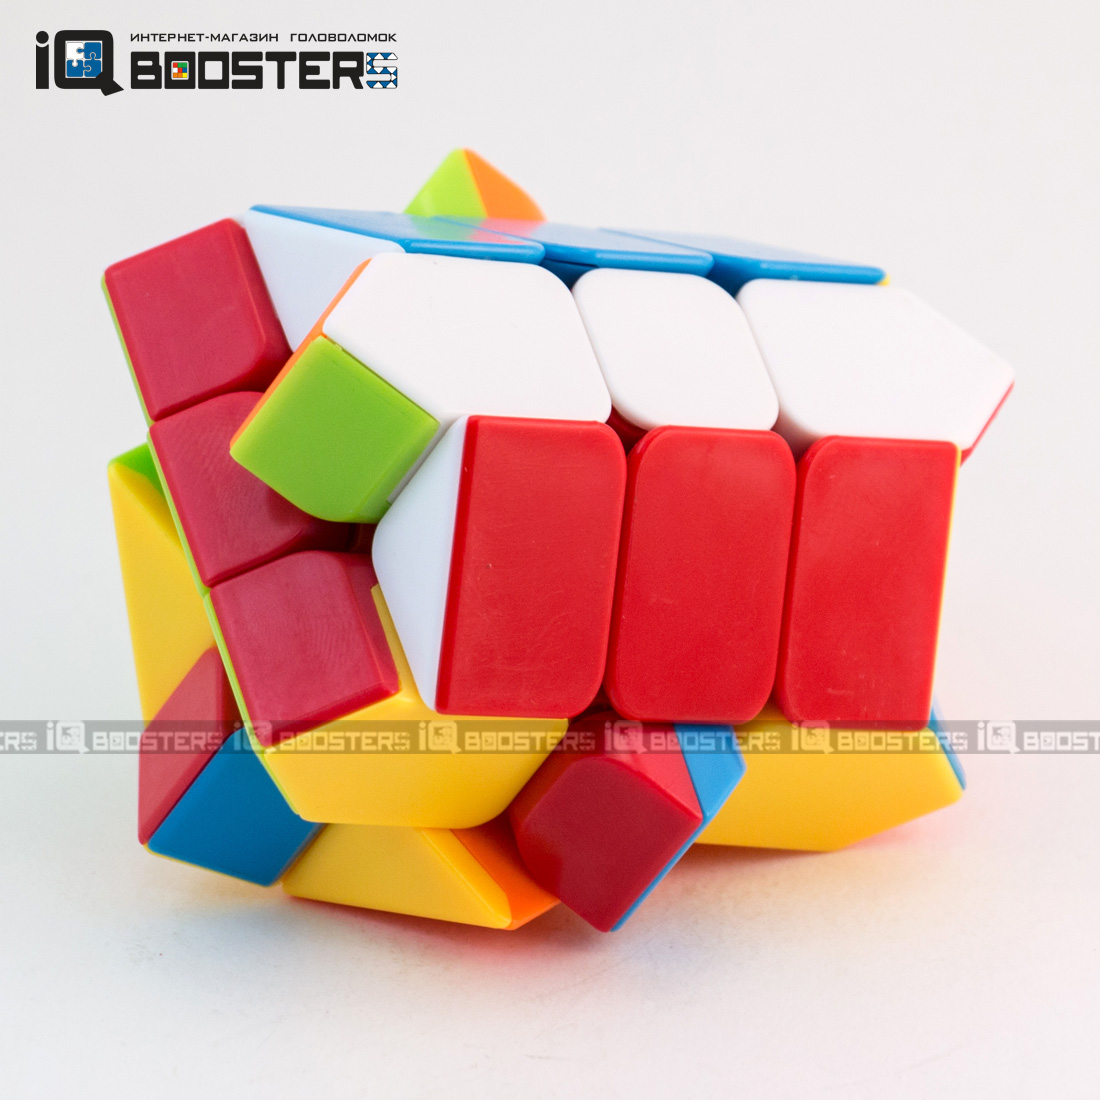 fanxin_fisher_cube_5